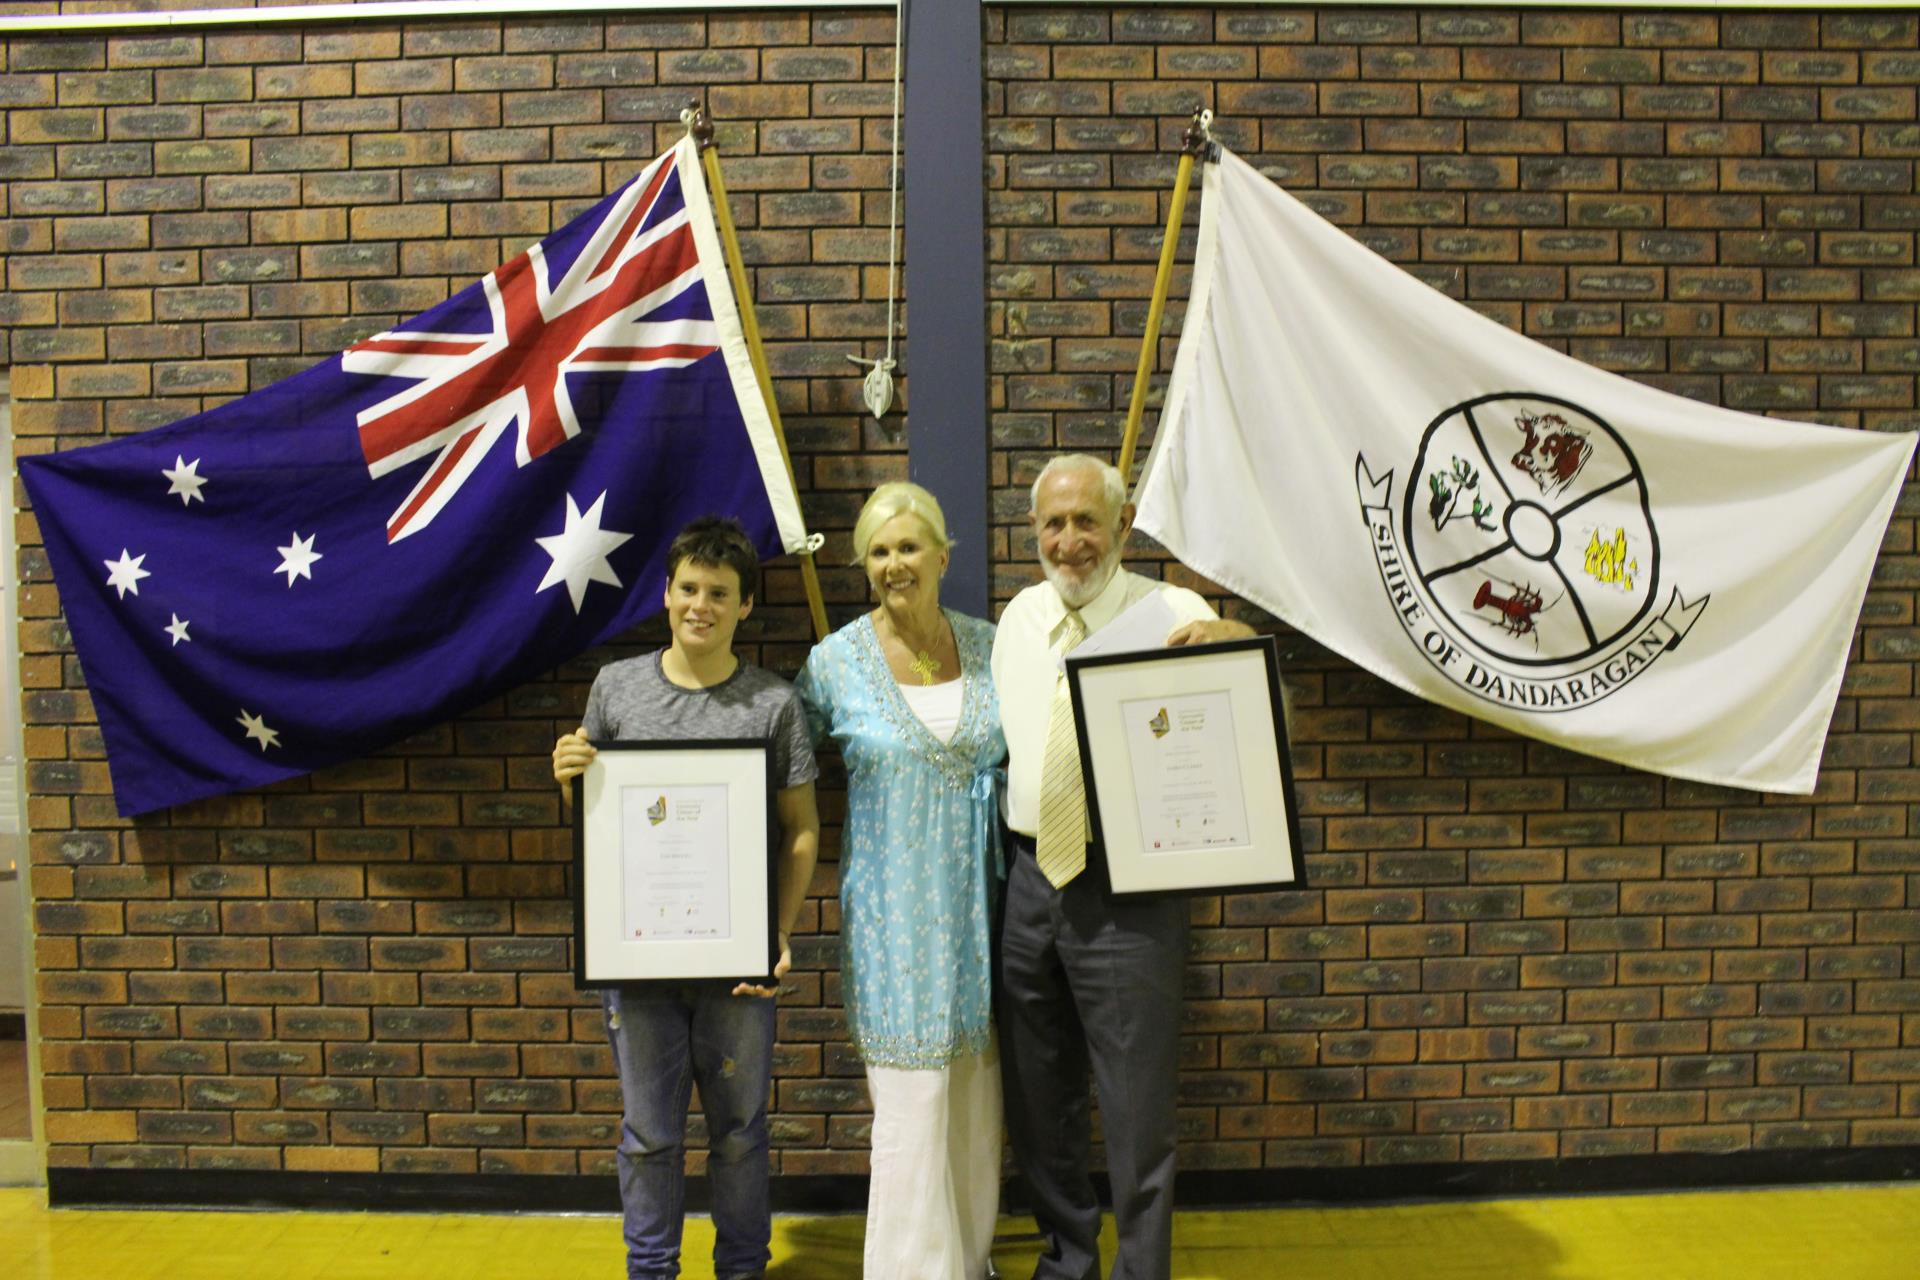 2016 Citizen of the Year and Young Citizen of the Year winners for Shire of Dandaragan